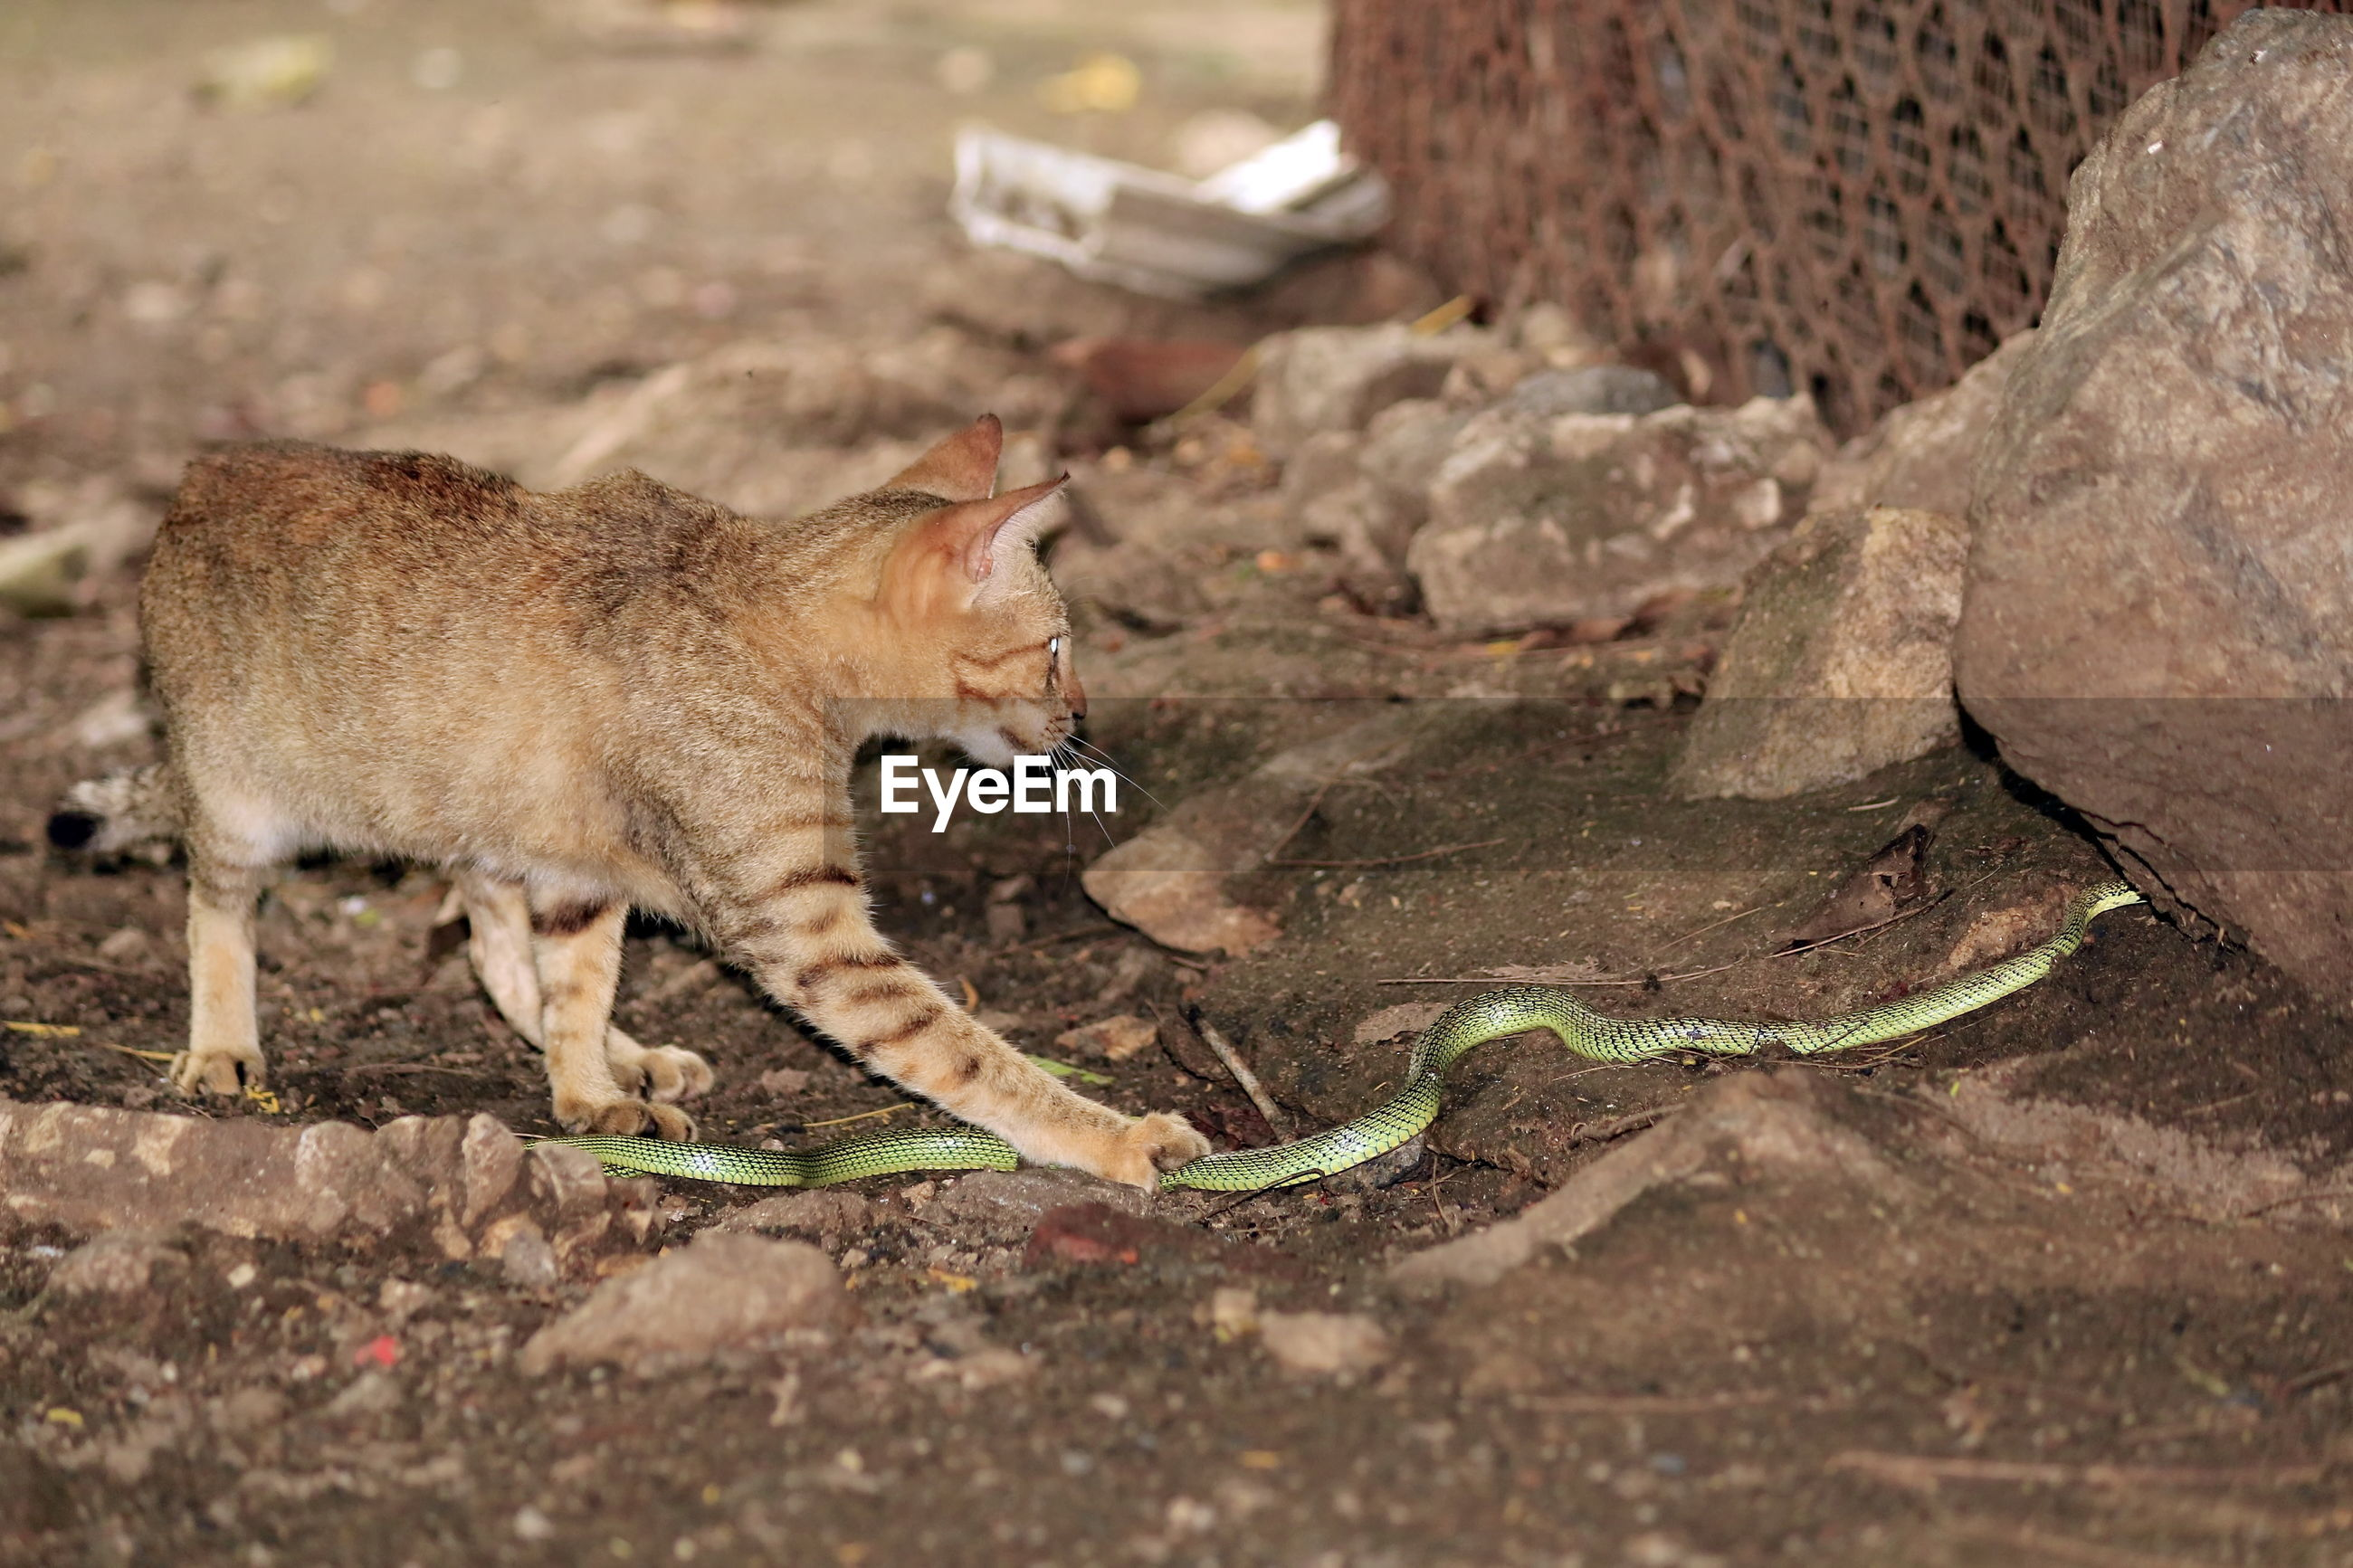 Predator cats are fighting with green snakes